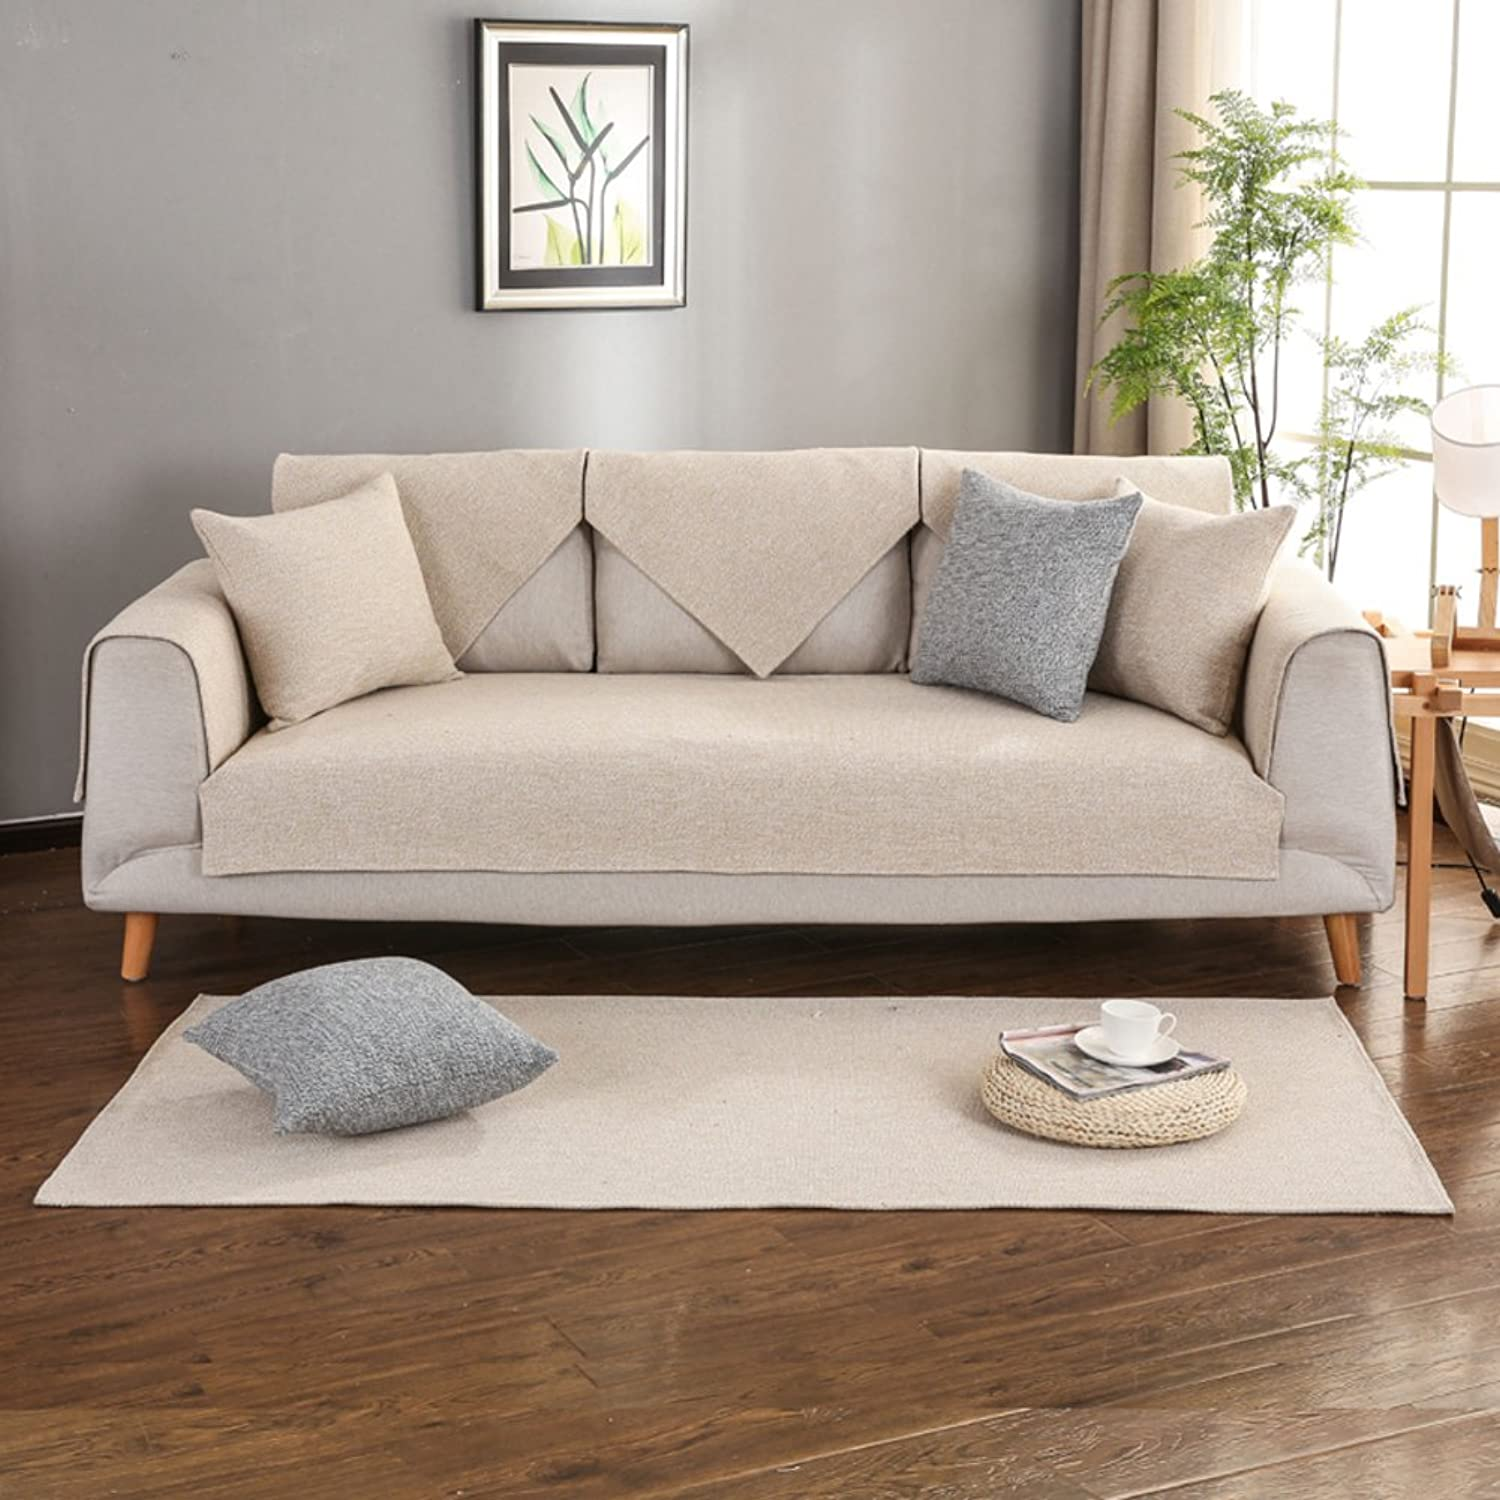 Sofa Cover,Dustproof Sofa Cover Reversible Quilting-F 110x210cm(43x83inch)